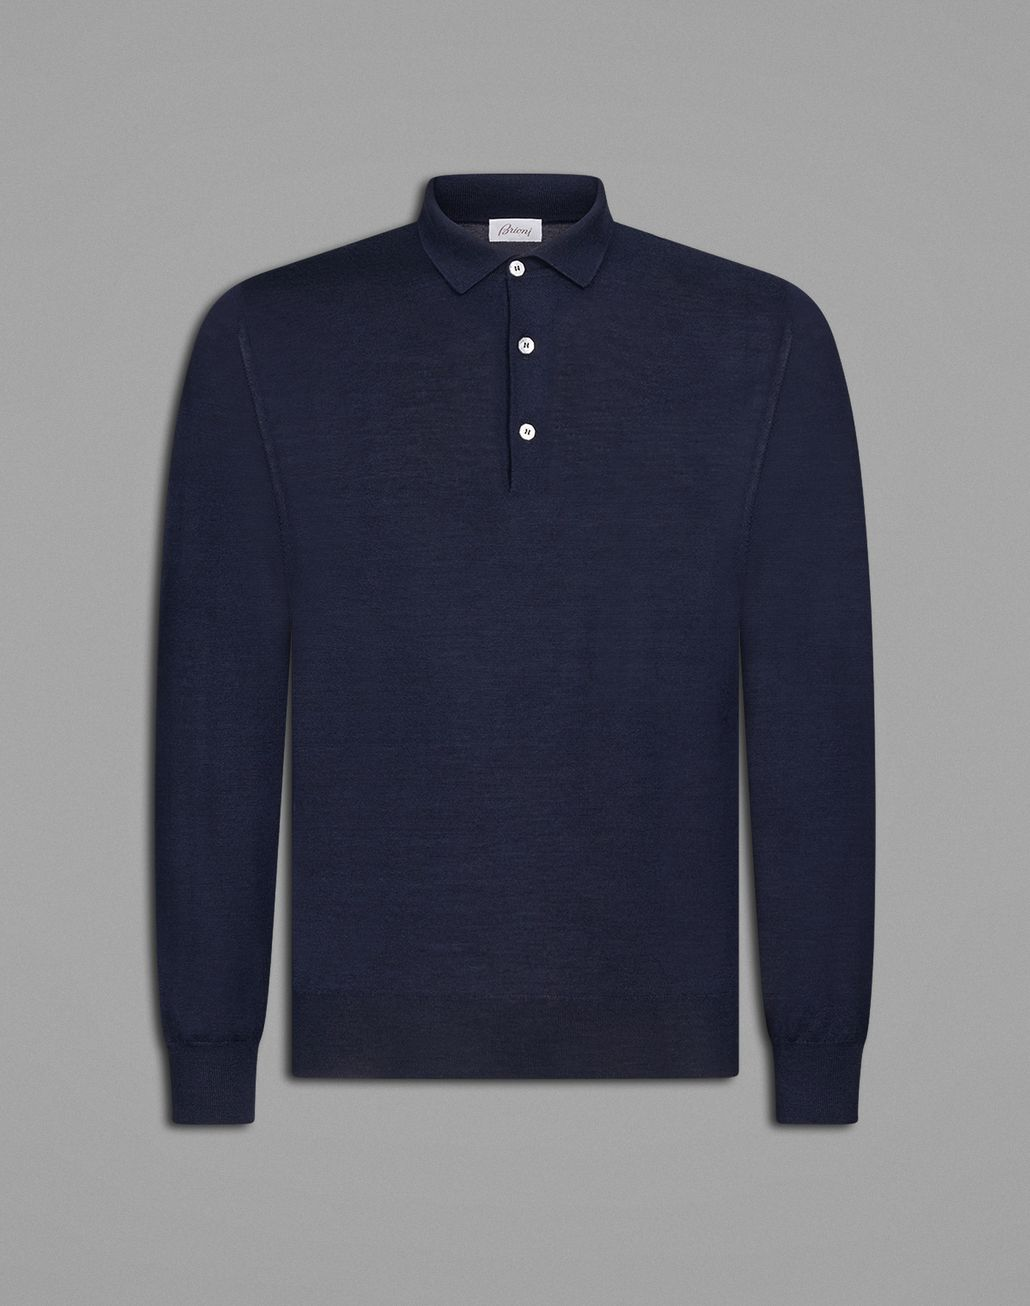 BRIONI  'Essential' Navy Blue Long-Sleeved Polo Shirt Knitwear Man f